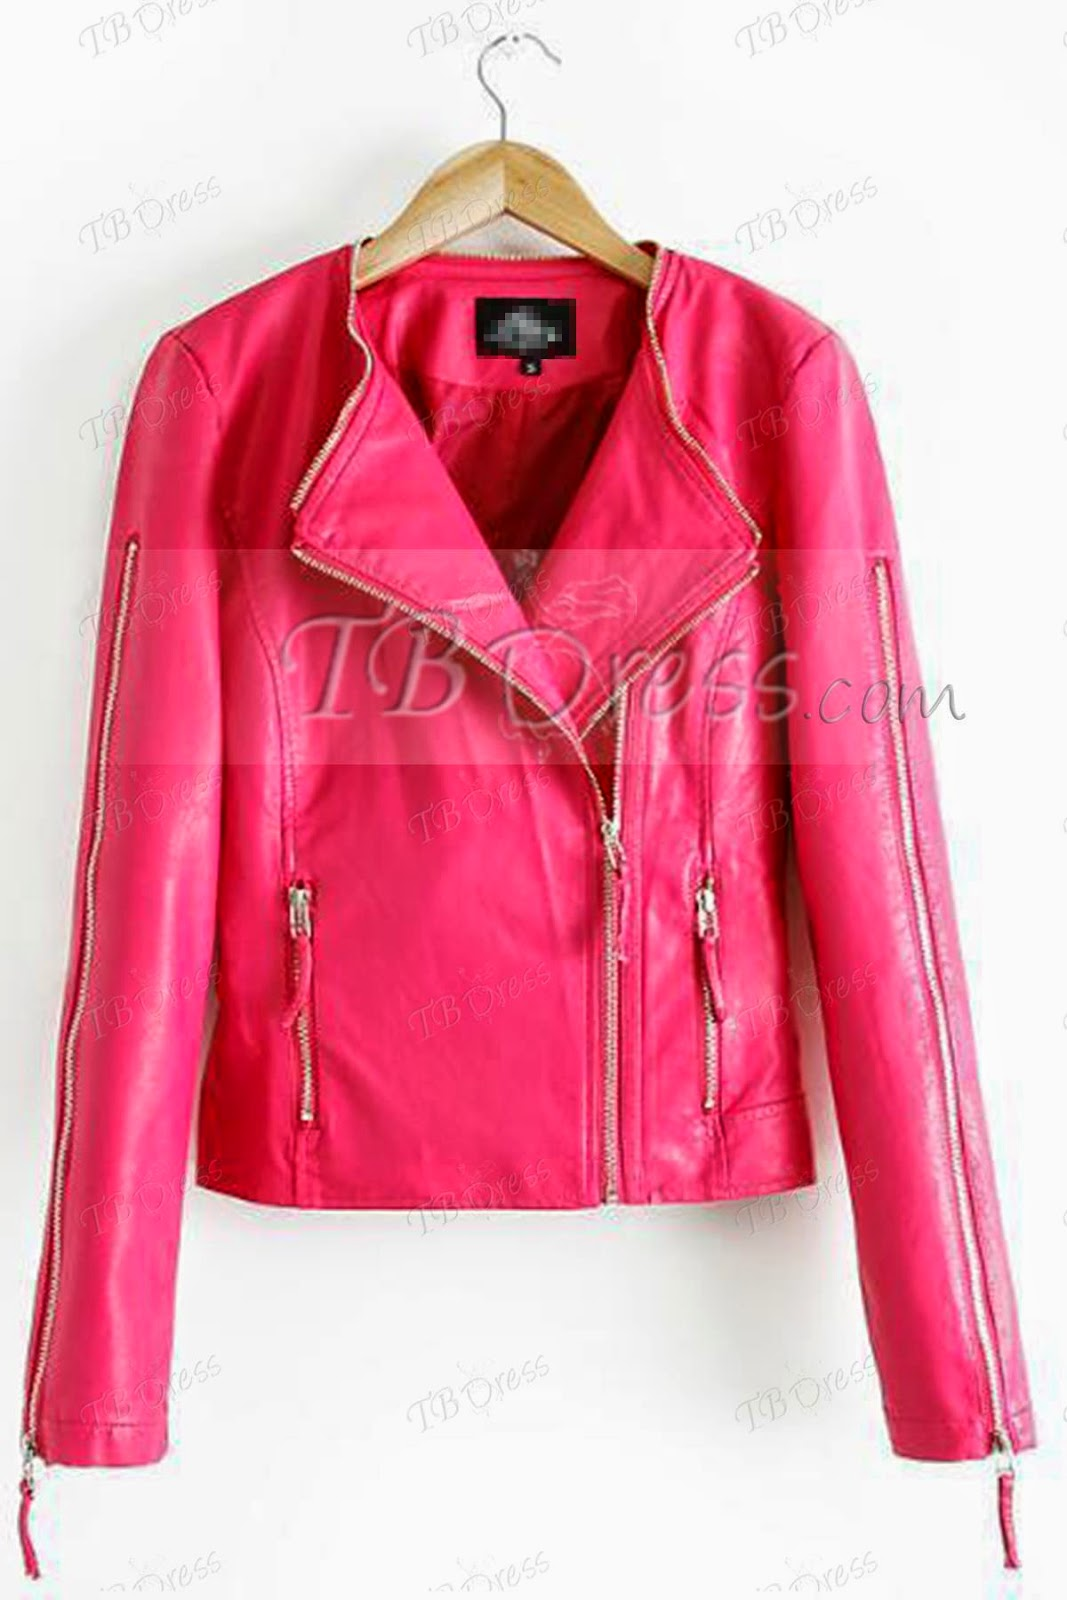 http://www.tbdress.com/product/Pure-Color-Lapel-Zipper-Sleeve-Jacket-10987324.html